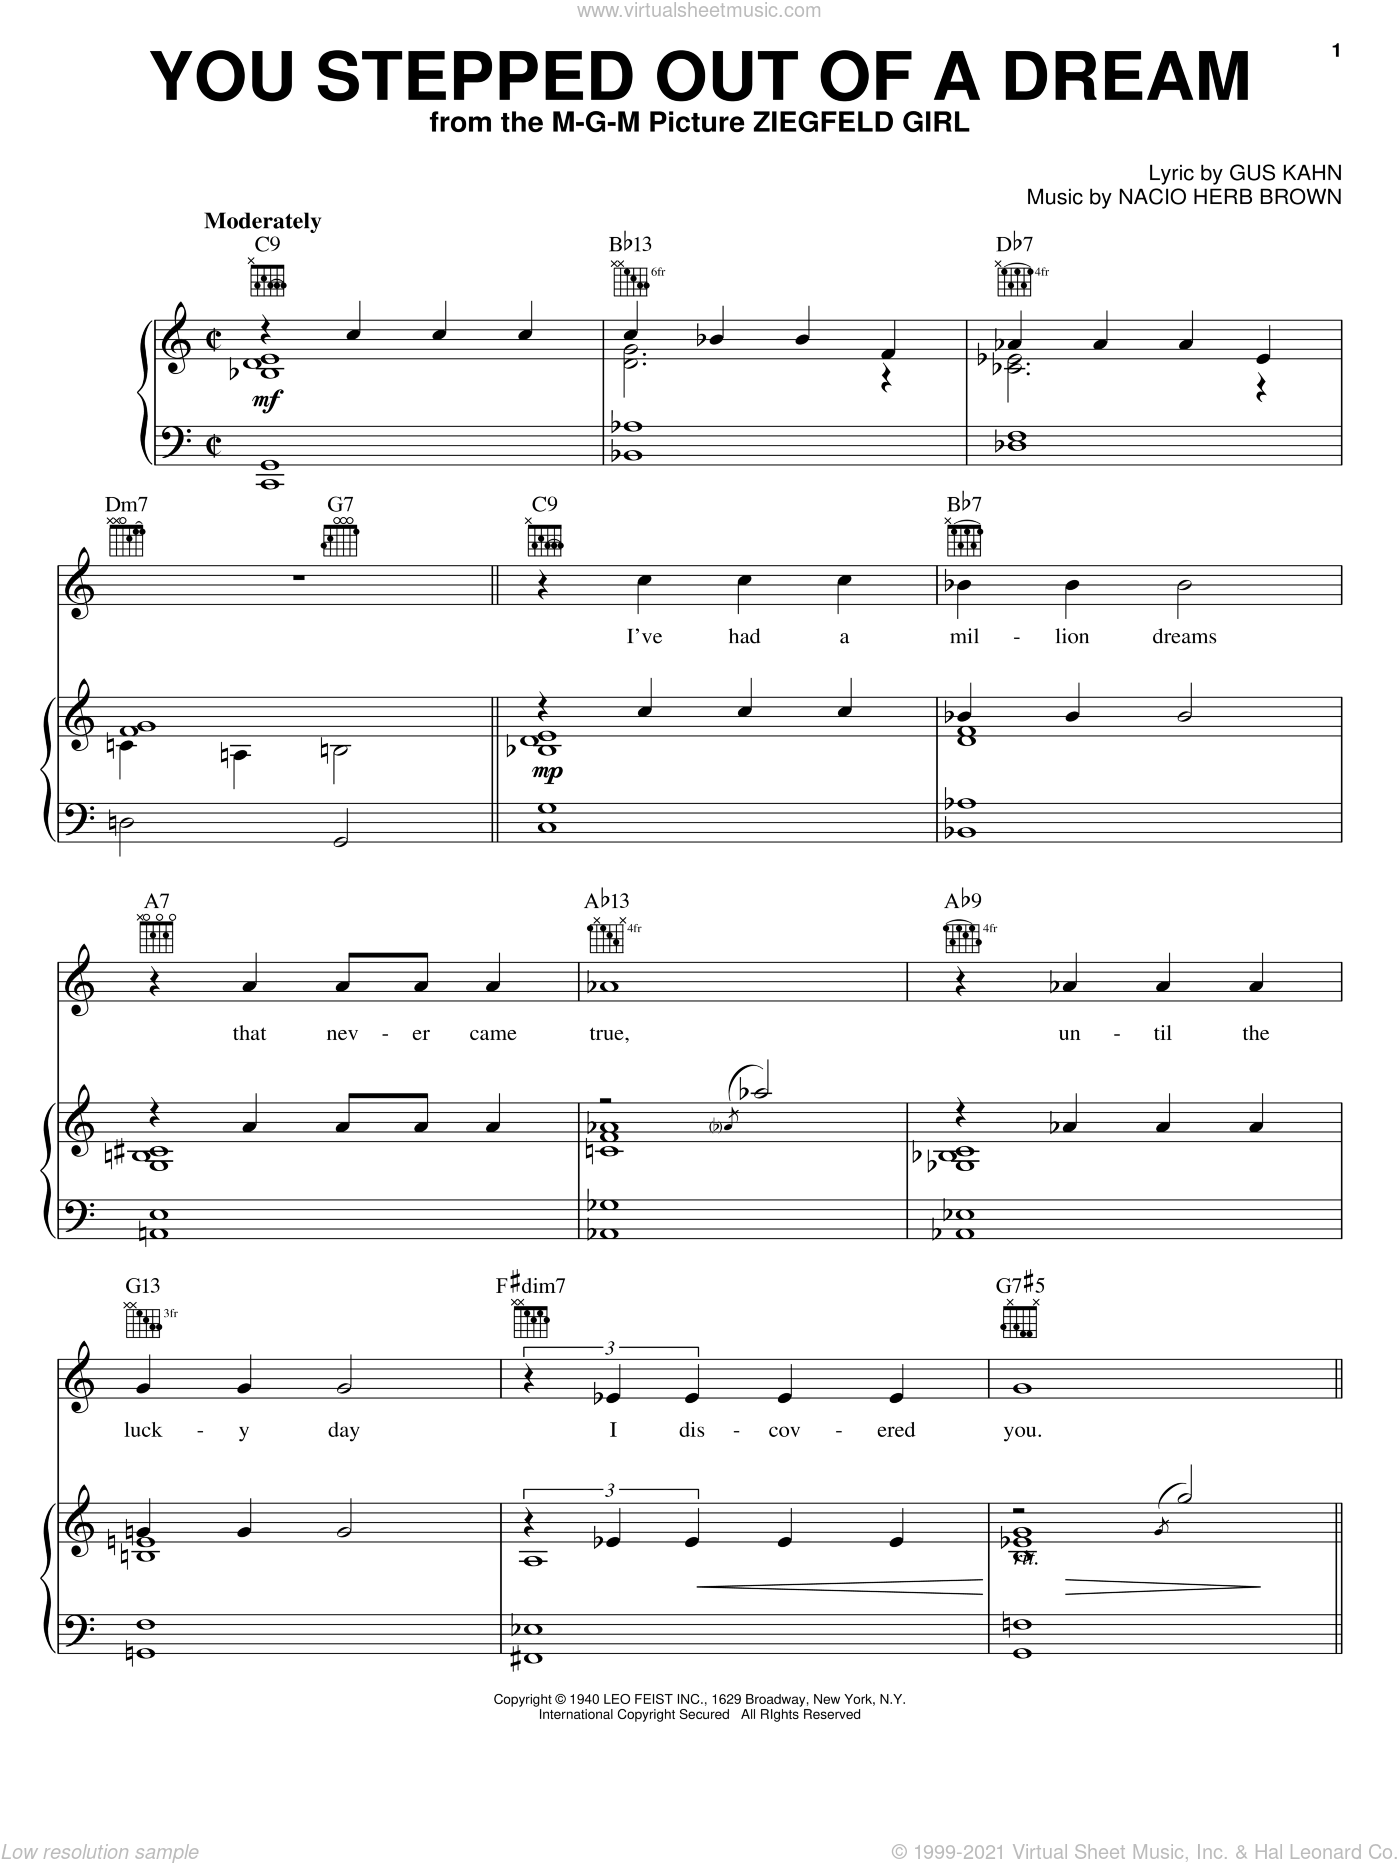 You Stepped Out Of A Dream sheet music for voice, piano or guitar by Sarah Vaughan, Glenn Miller, Nat King Cole, Gus Kahn and Nacio Herb Brown, intermediate skill level